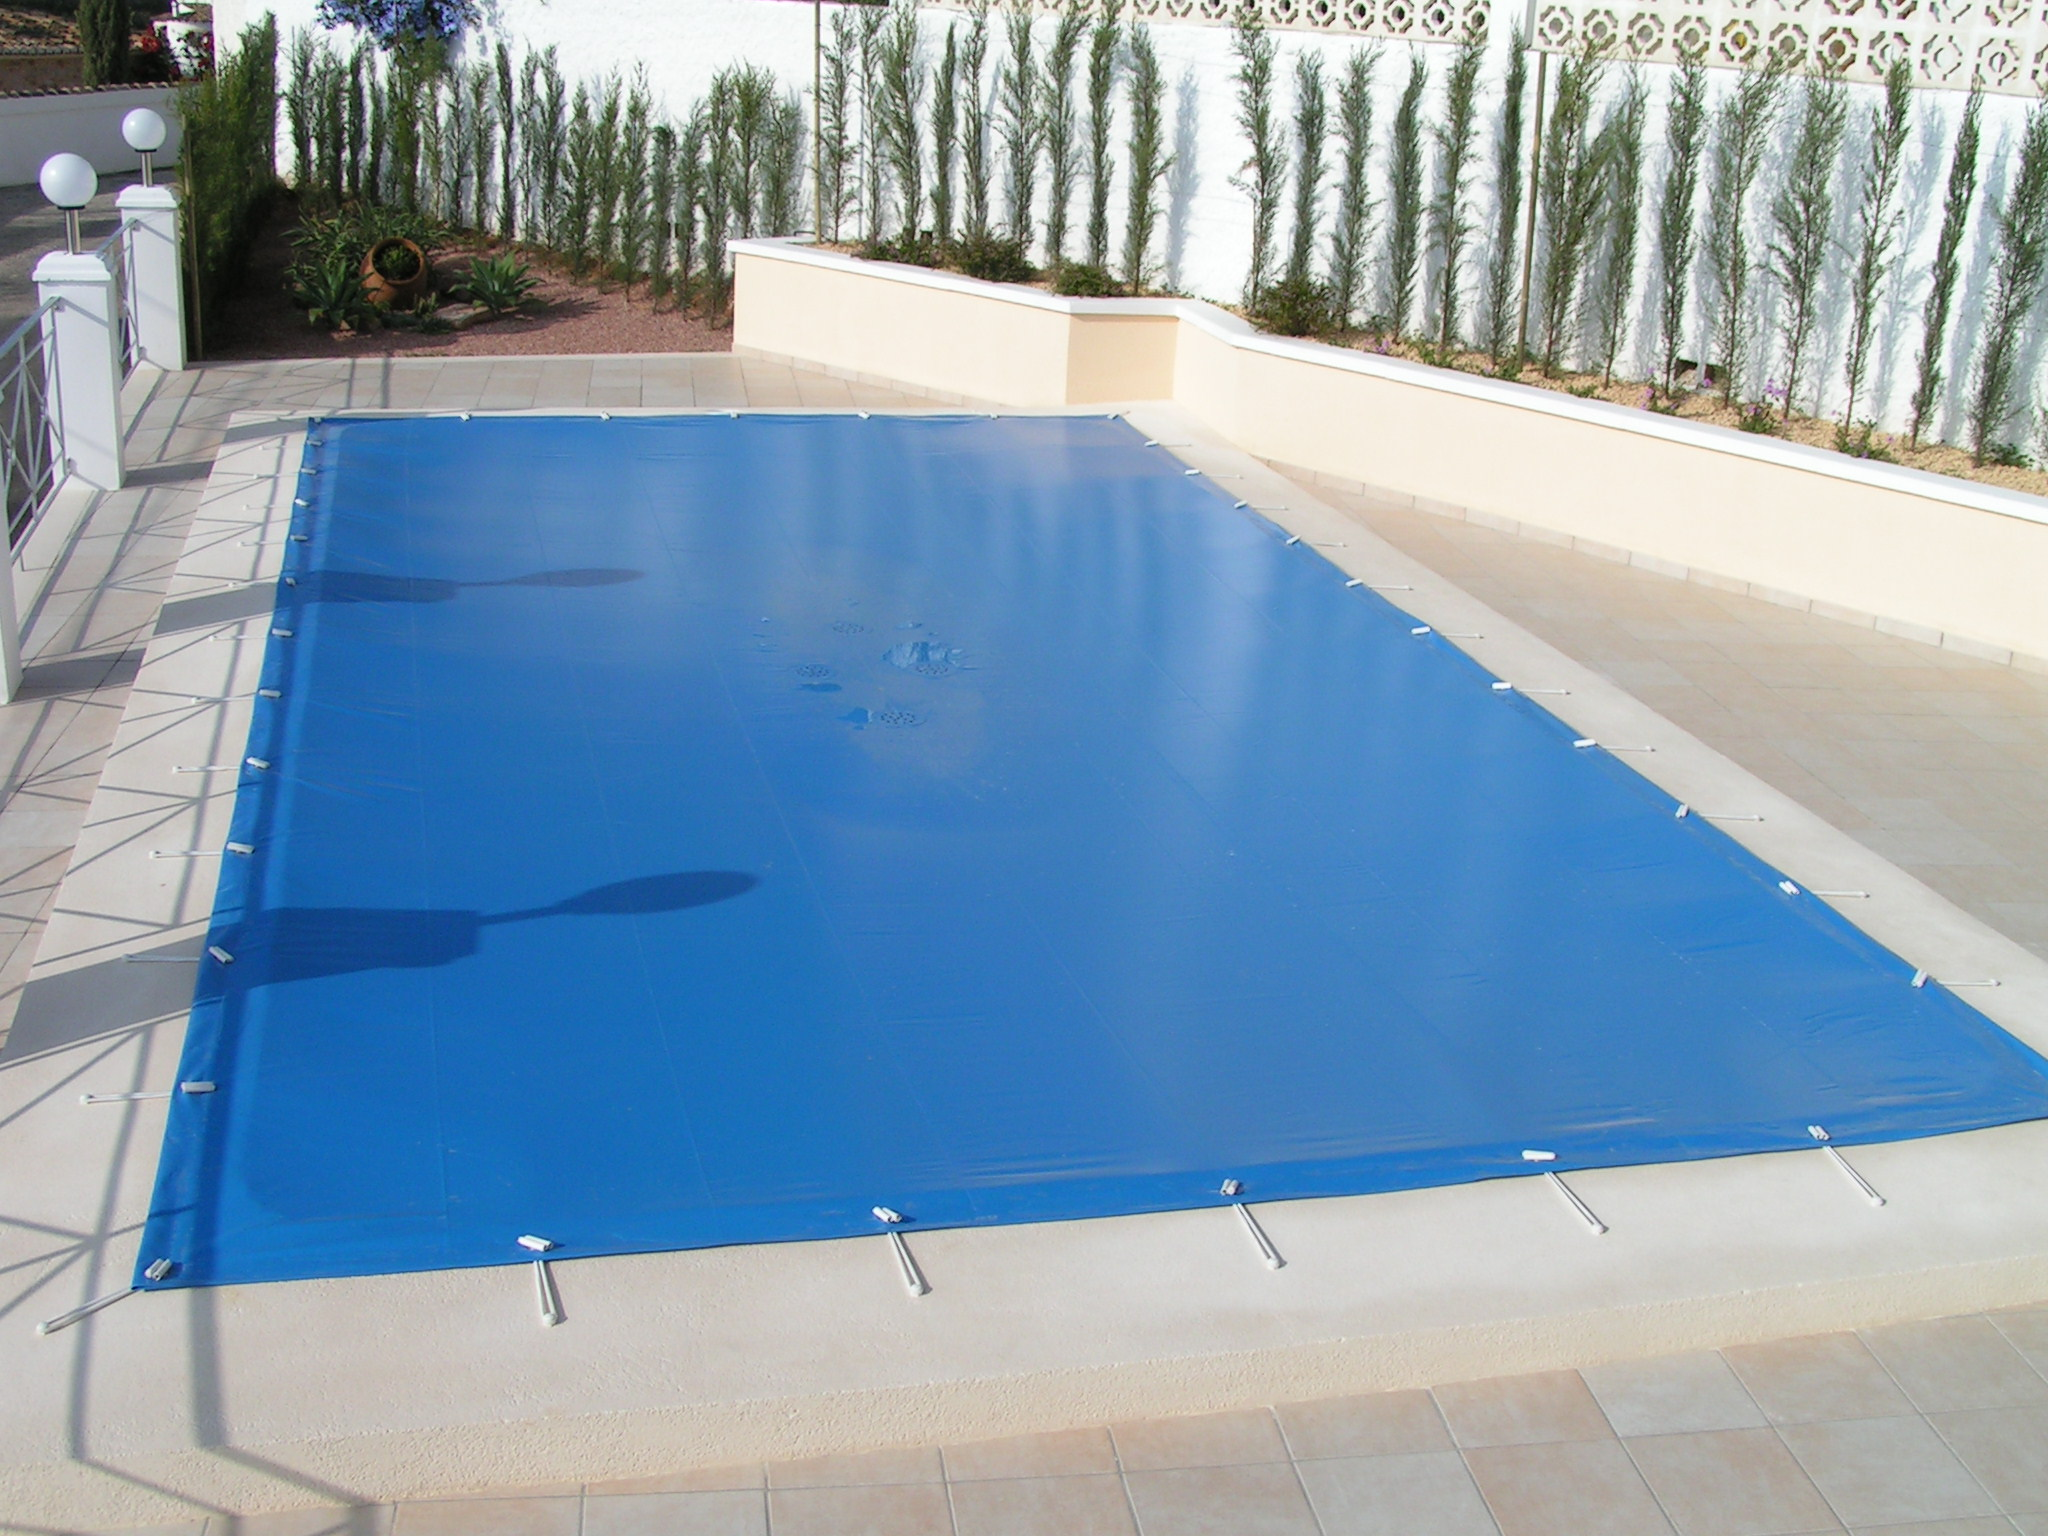 A Handy Checklist for Your Spring Pool Opening